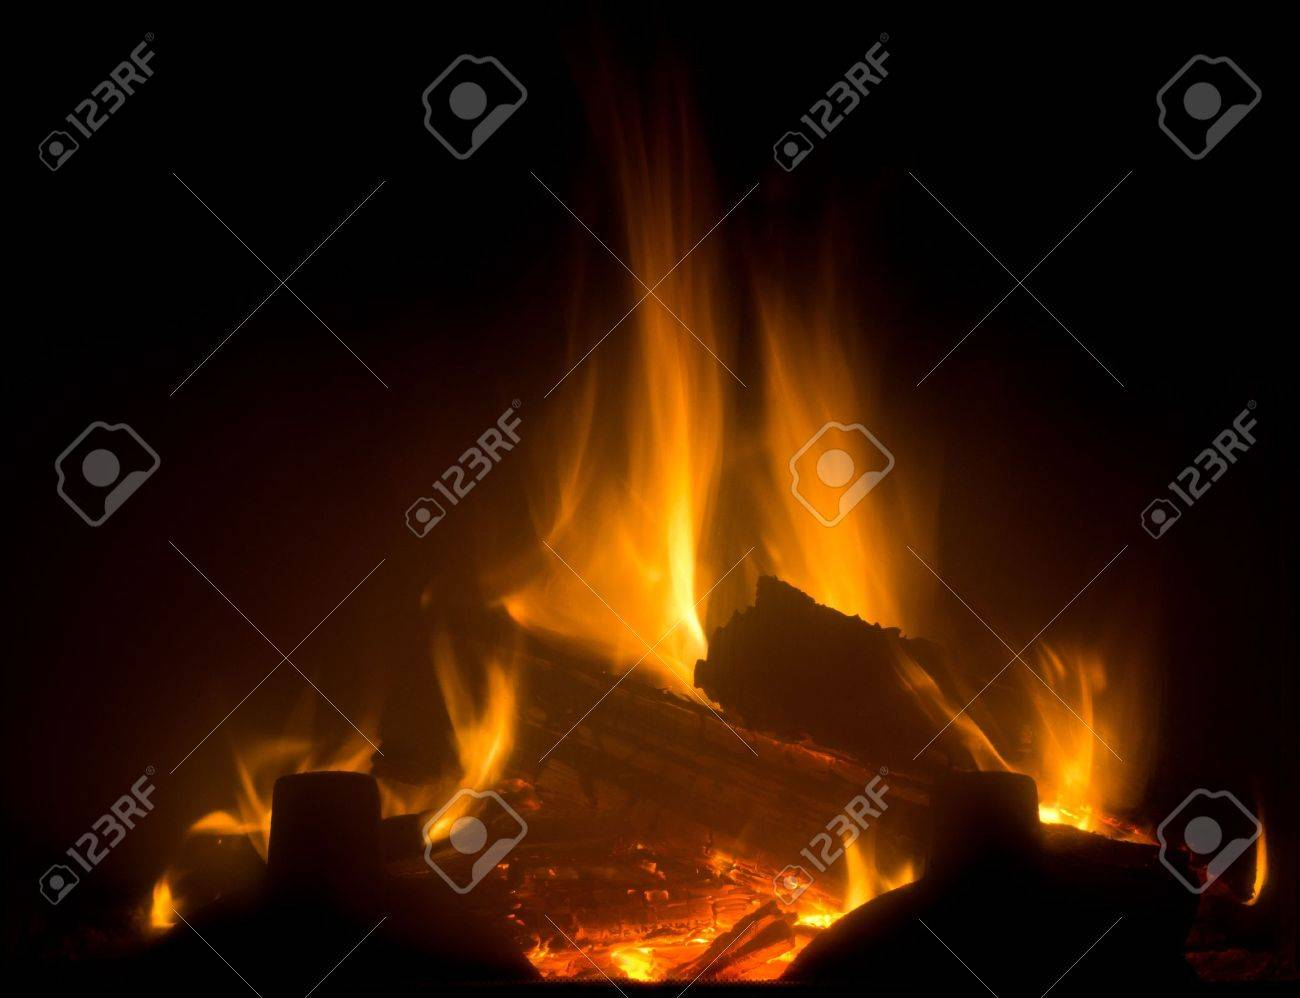 Flame of fireplace with black background Stock Photo - 11888919